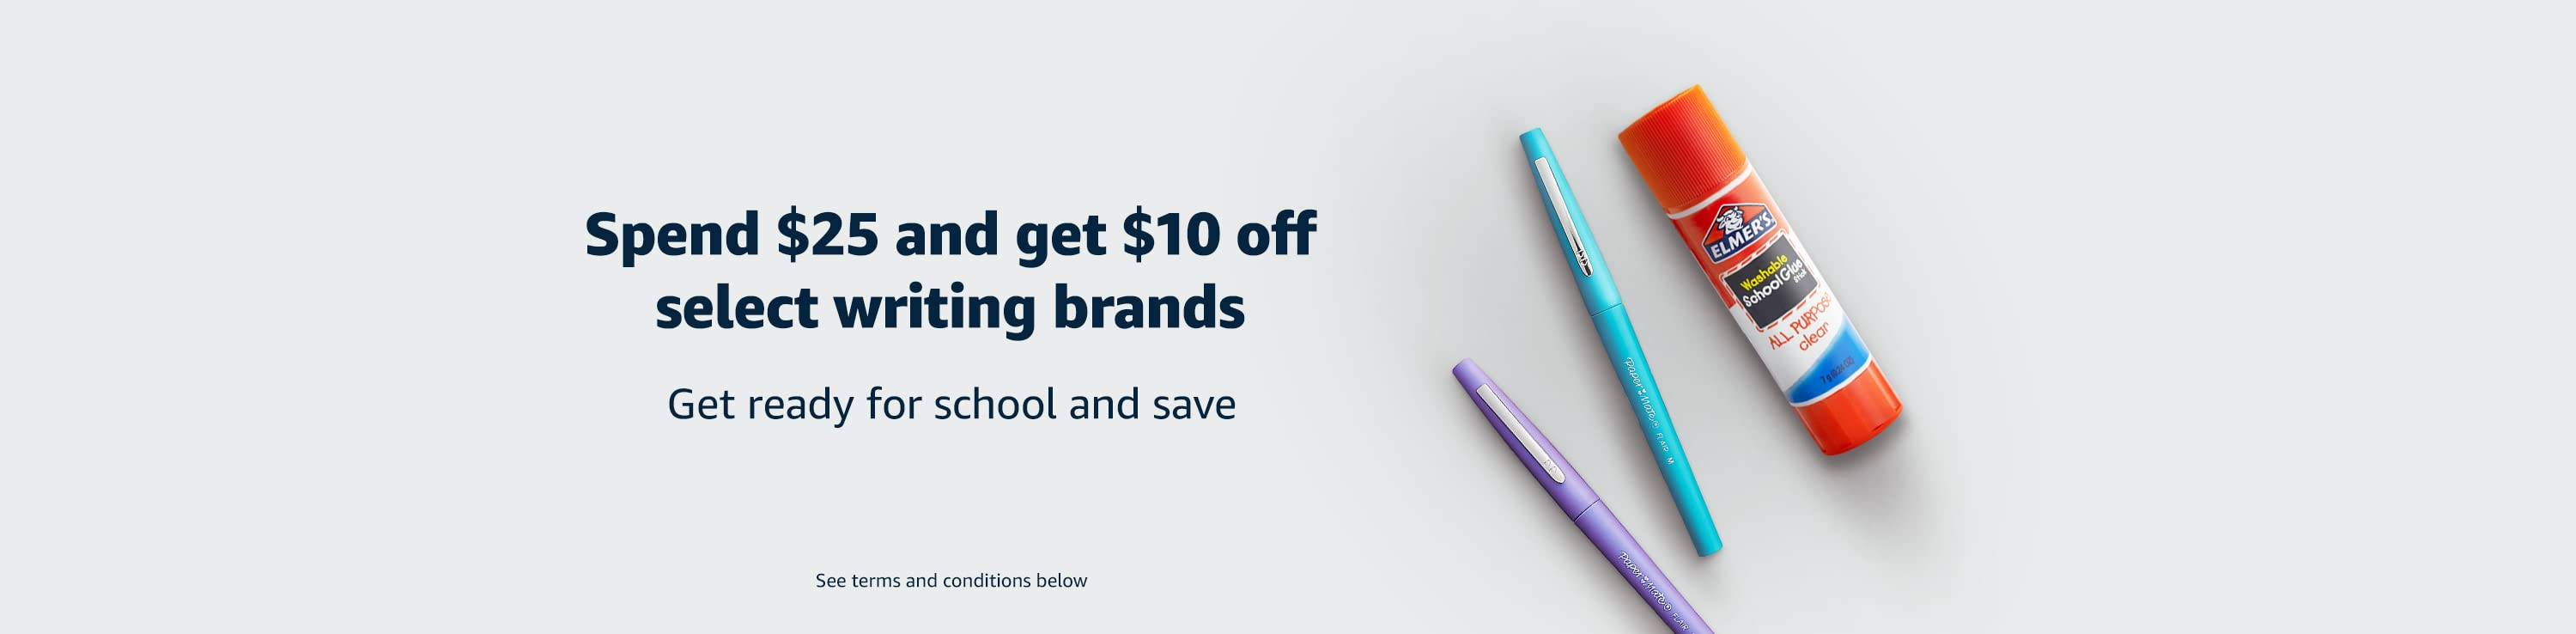 Spend $25 and get $10 off select writing brands Get ready for school and save.  Paper Mate flair felt tip pens. Elmer's disappearing purple school glue.   Please find the terms and conditions for this offer at the end of the page.